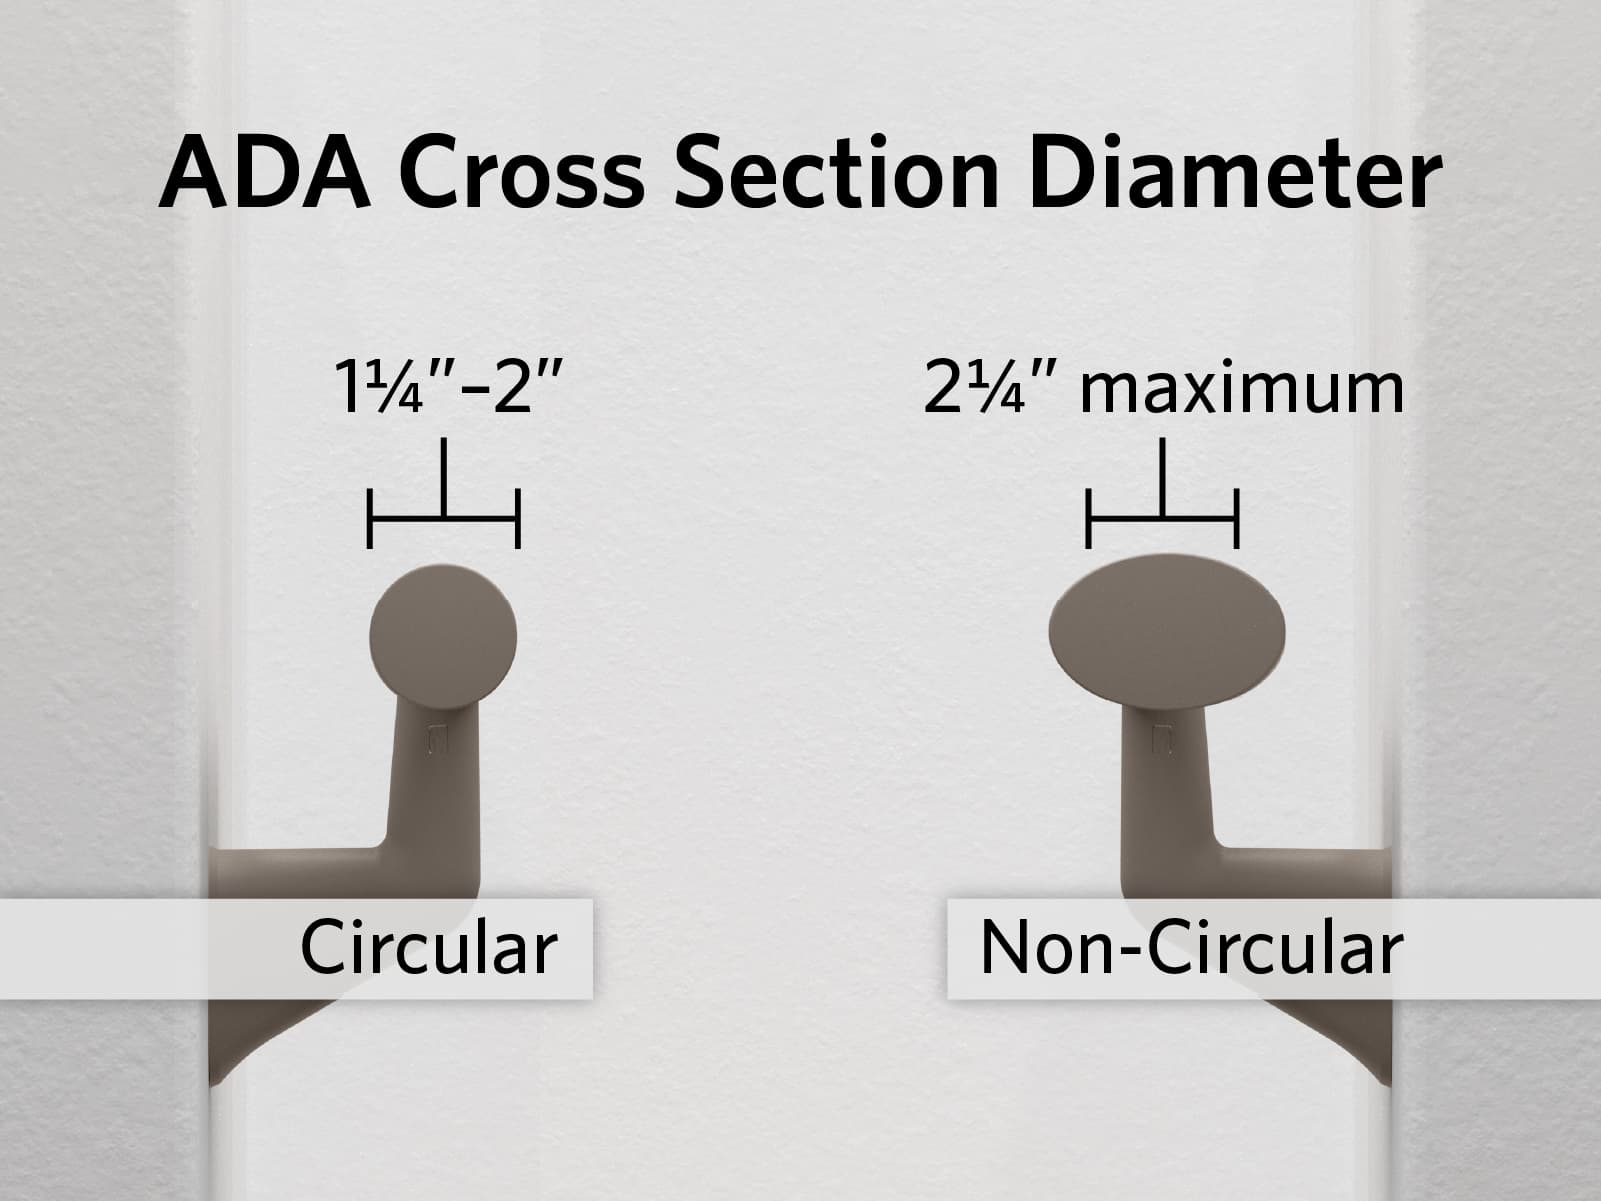 Horizontal lines across a circular handrail grip and non-circular grip showing the correct ADA cross section diameters